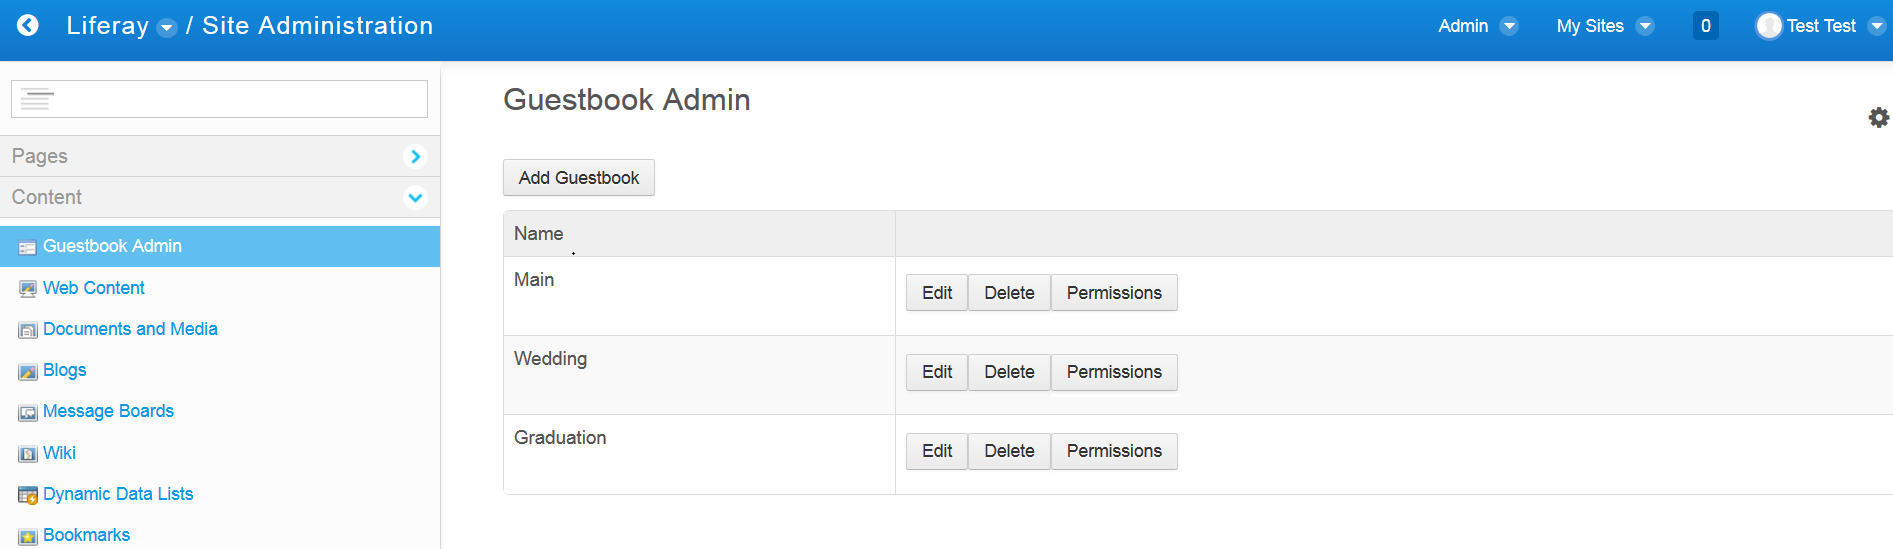 Figure 1: The Guestbook Admins UI will contain buttons to add, edit, delete, and control permissions of guestbook entities.